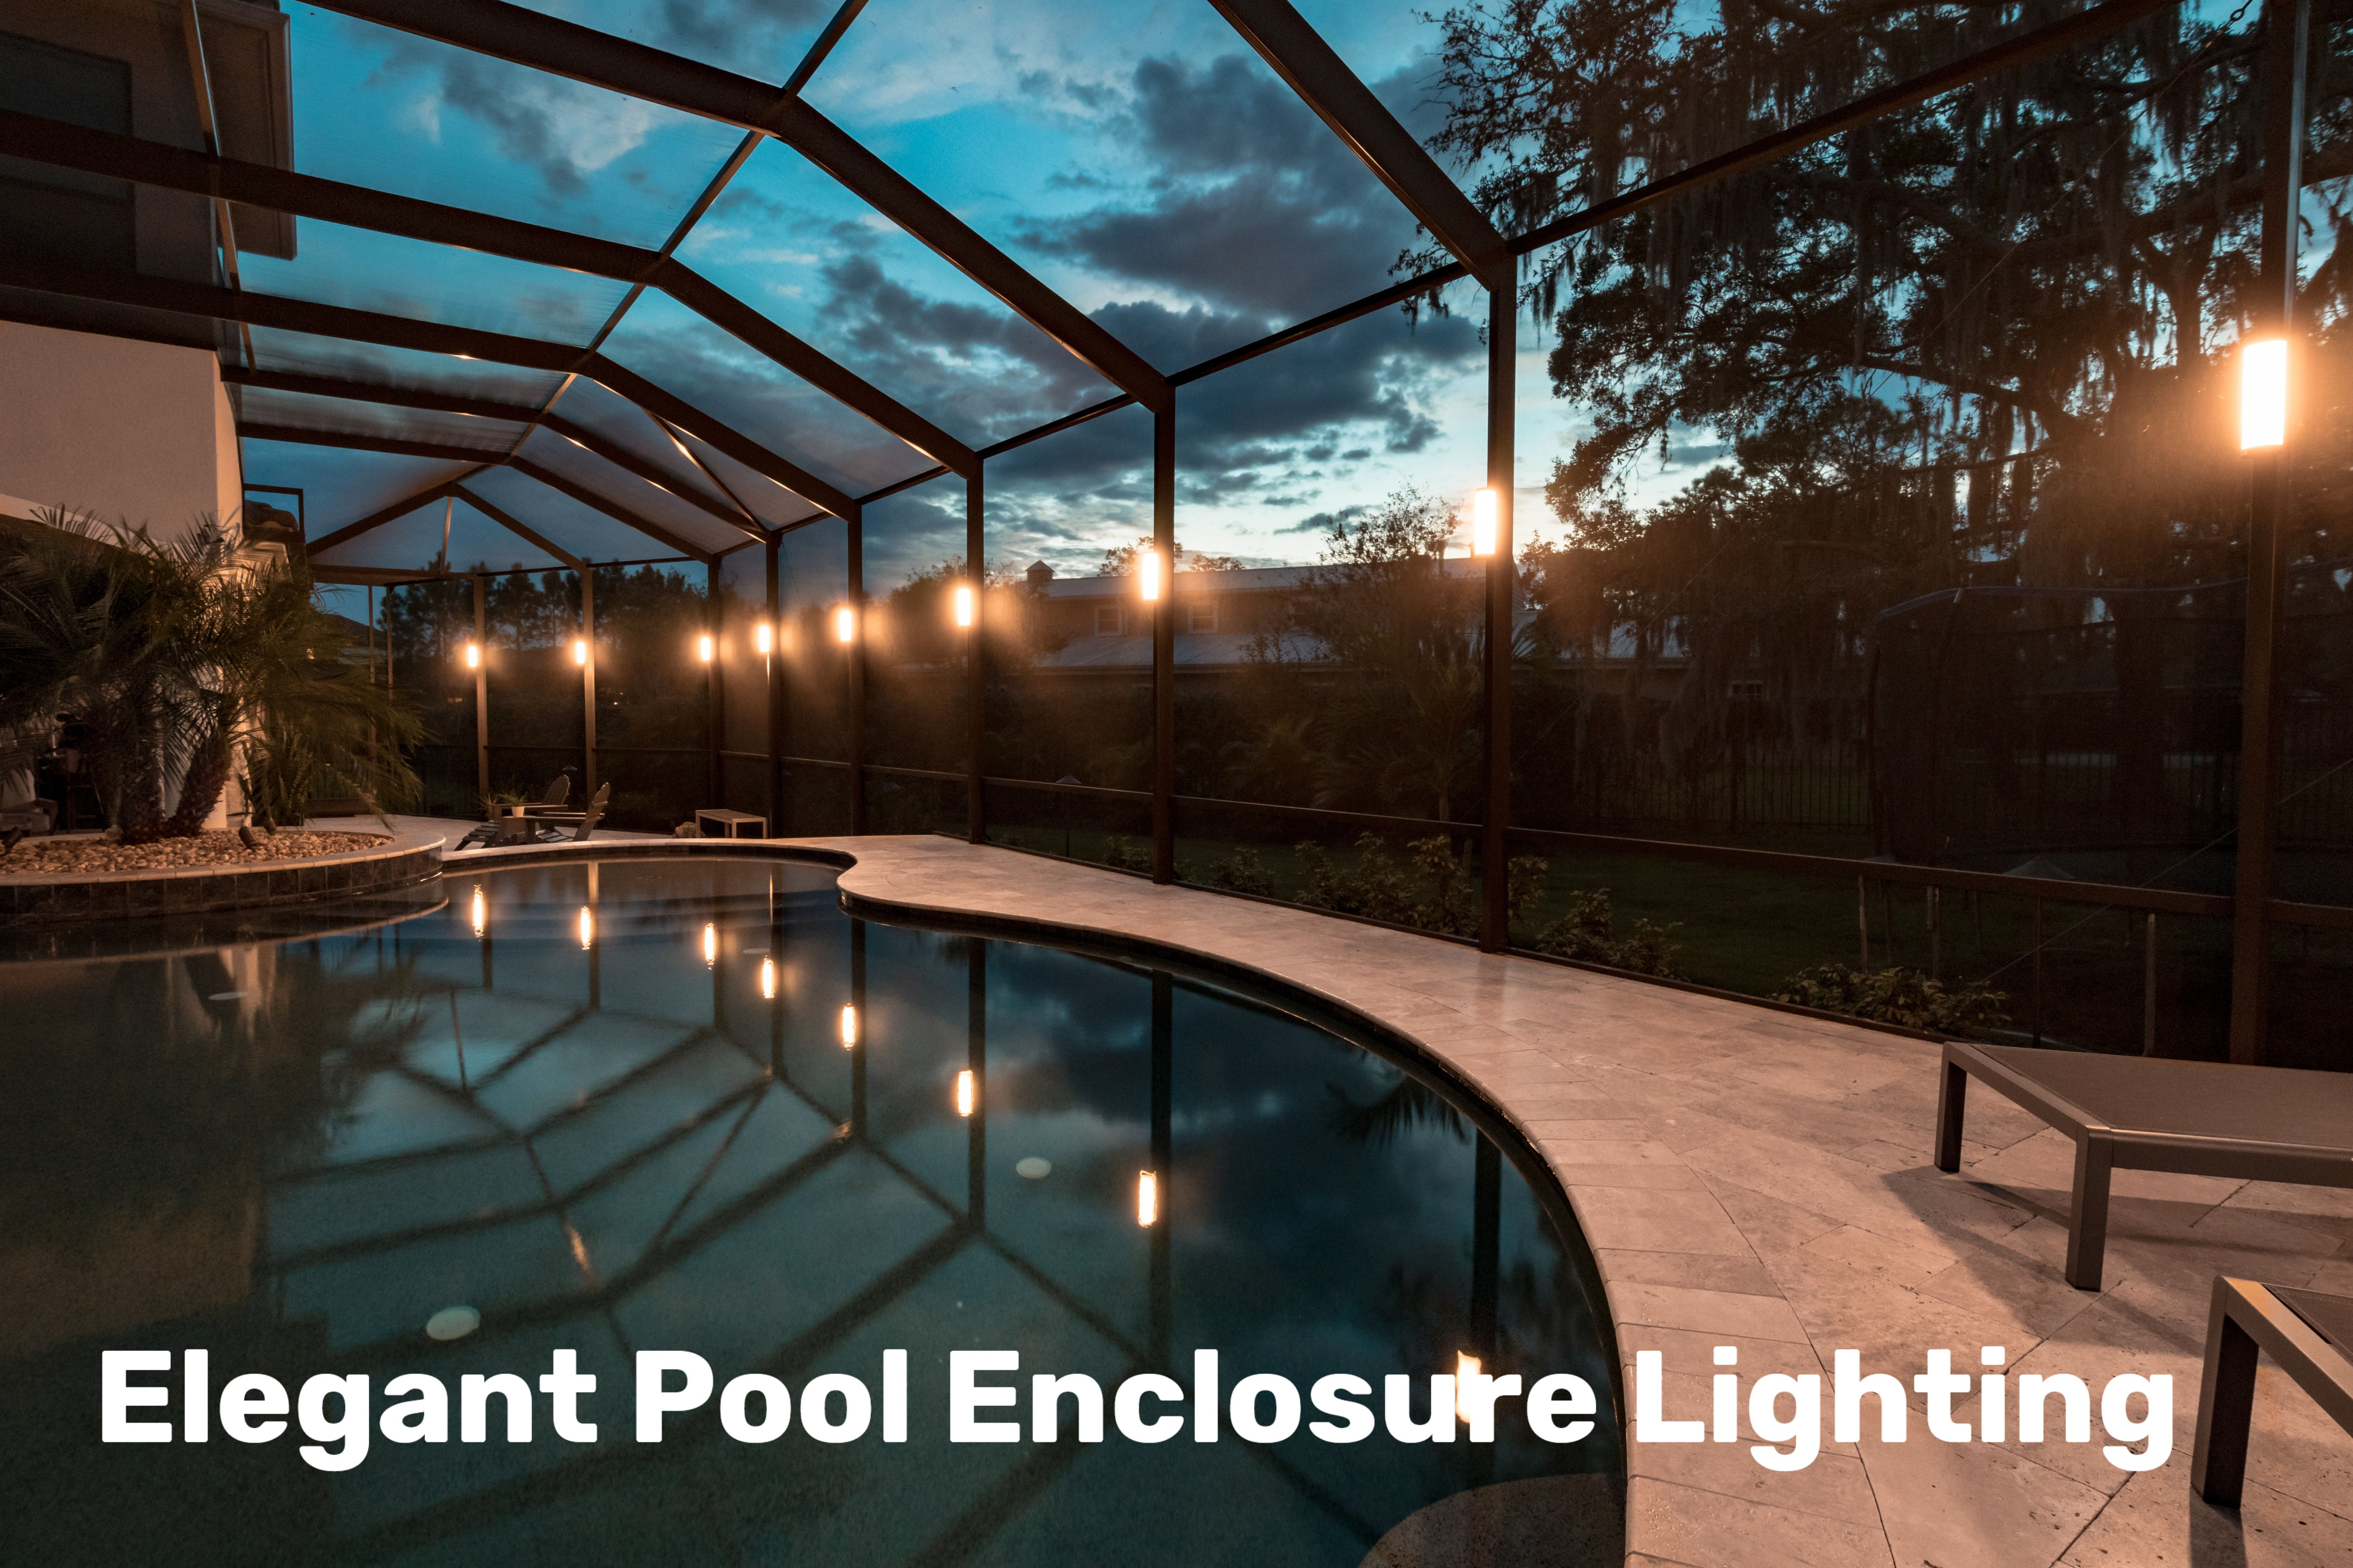 Light Up Your Lanai With Elegant White Lighting And Rich Vibrant Colors Lanai Lighting Pool Enclosure Lighting Pool Cage